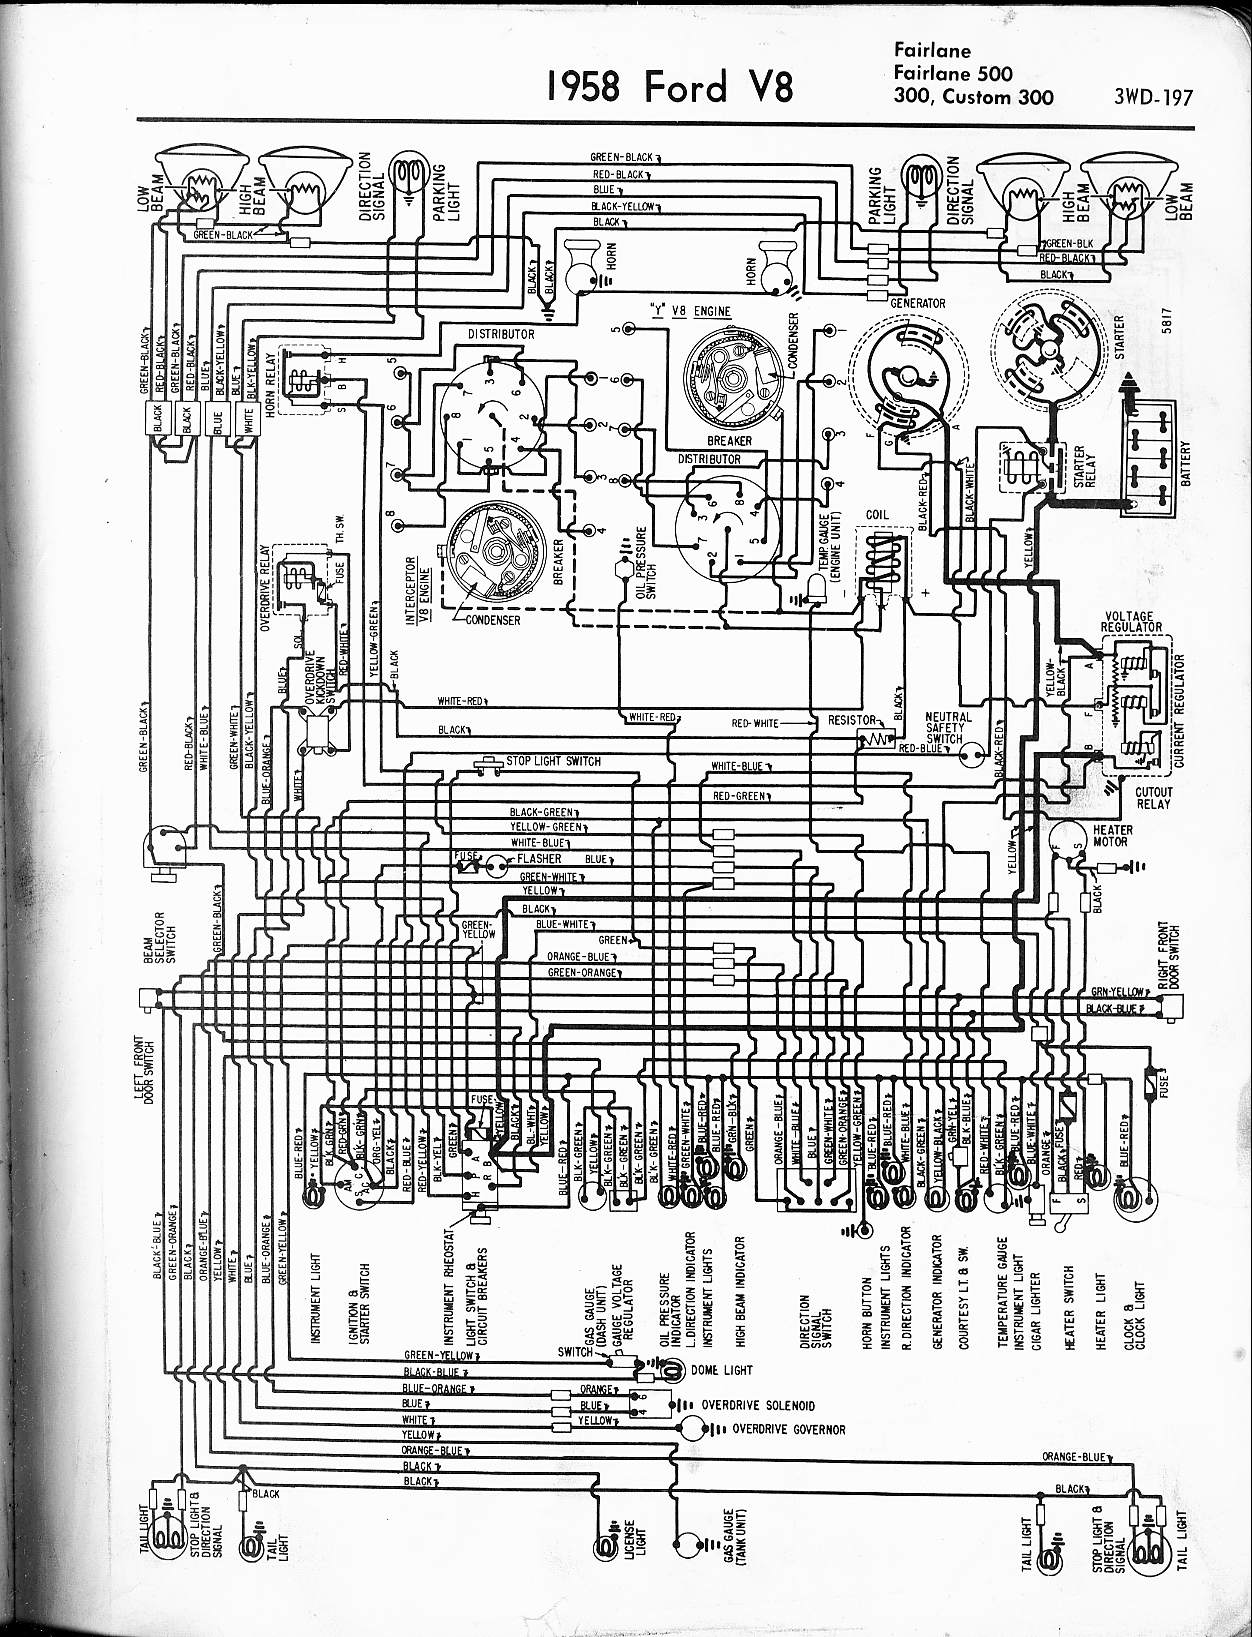 MWire5765 197 1966 ford ranchero wiring diagram free download wiring diagrams